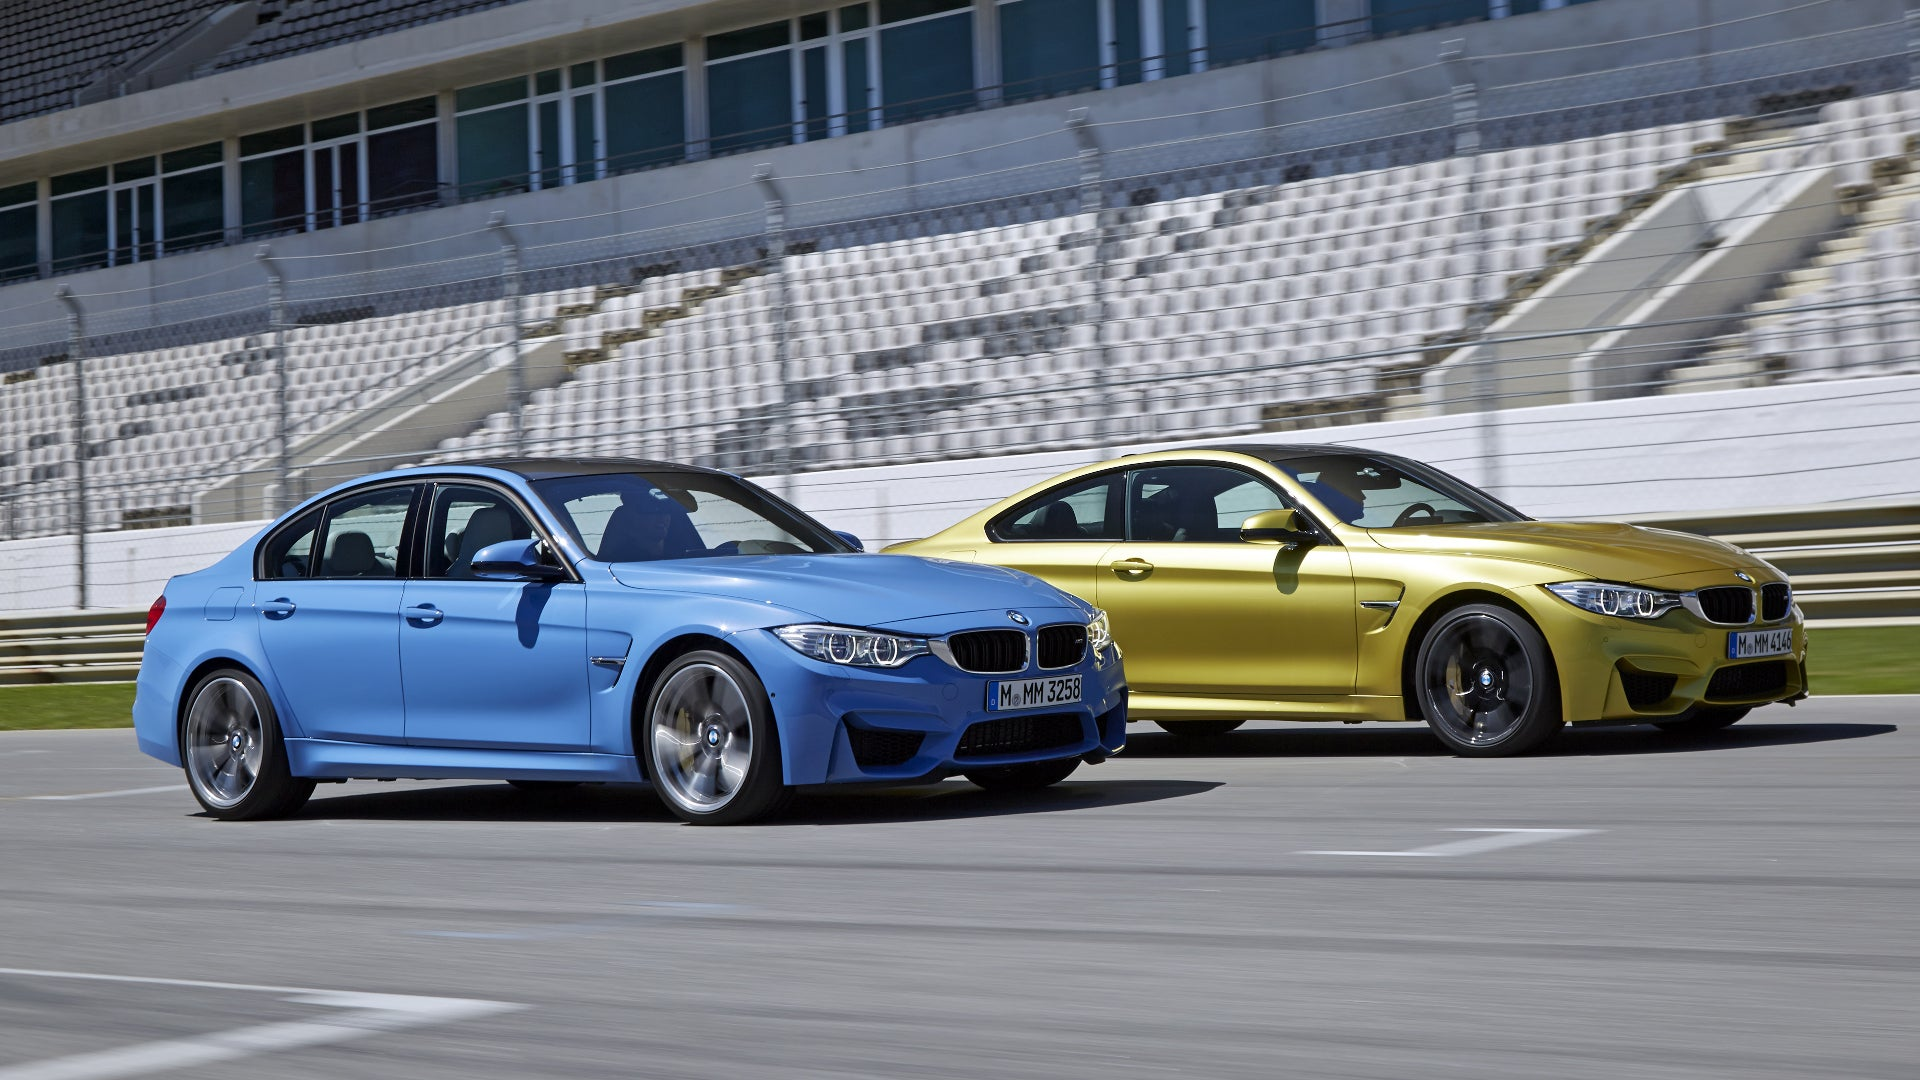 New Safety Tech Is Already Banning Some Cars From Race Tracks